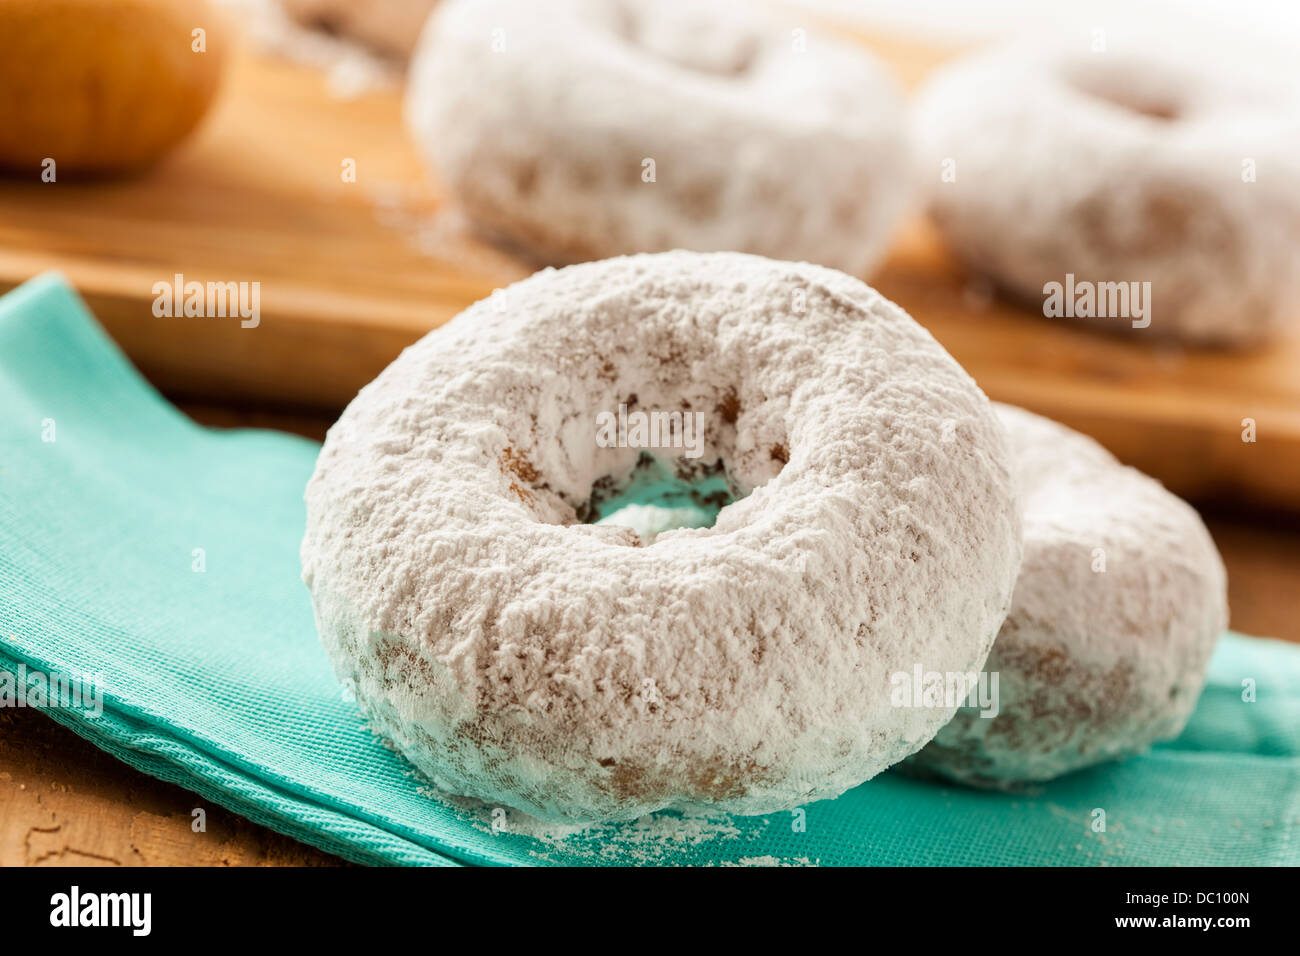 hausgemachte wei gepudert donuts auf einem hintergrund stockfoto bild 59028949 alamy. Black Bedroom Furniture Sets. Home Design Ideas